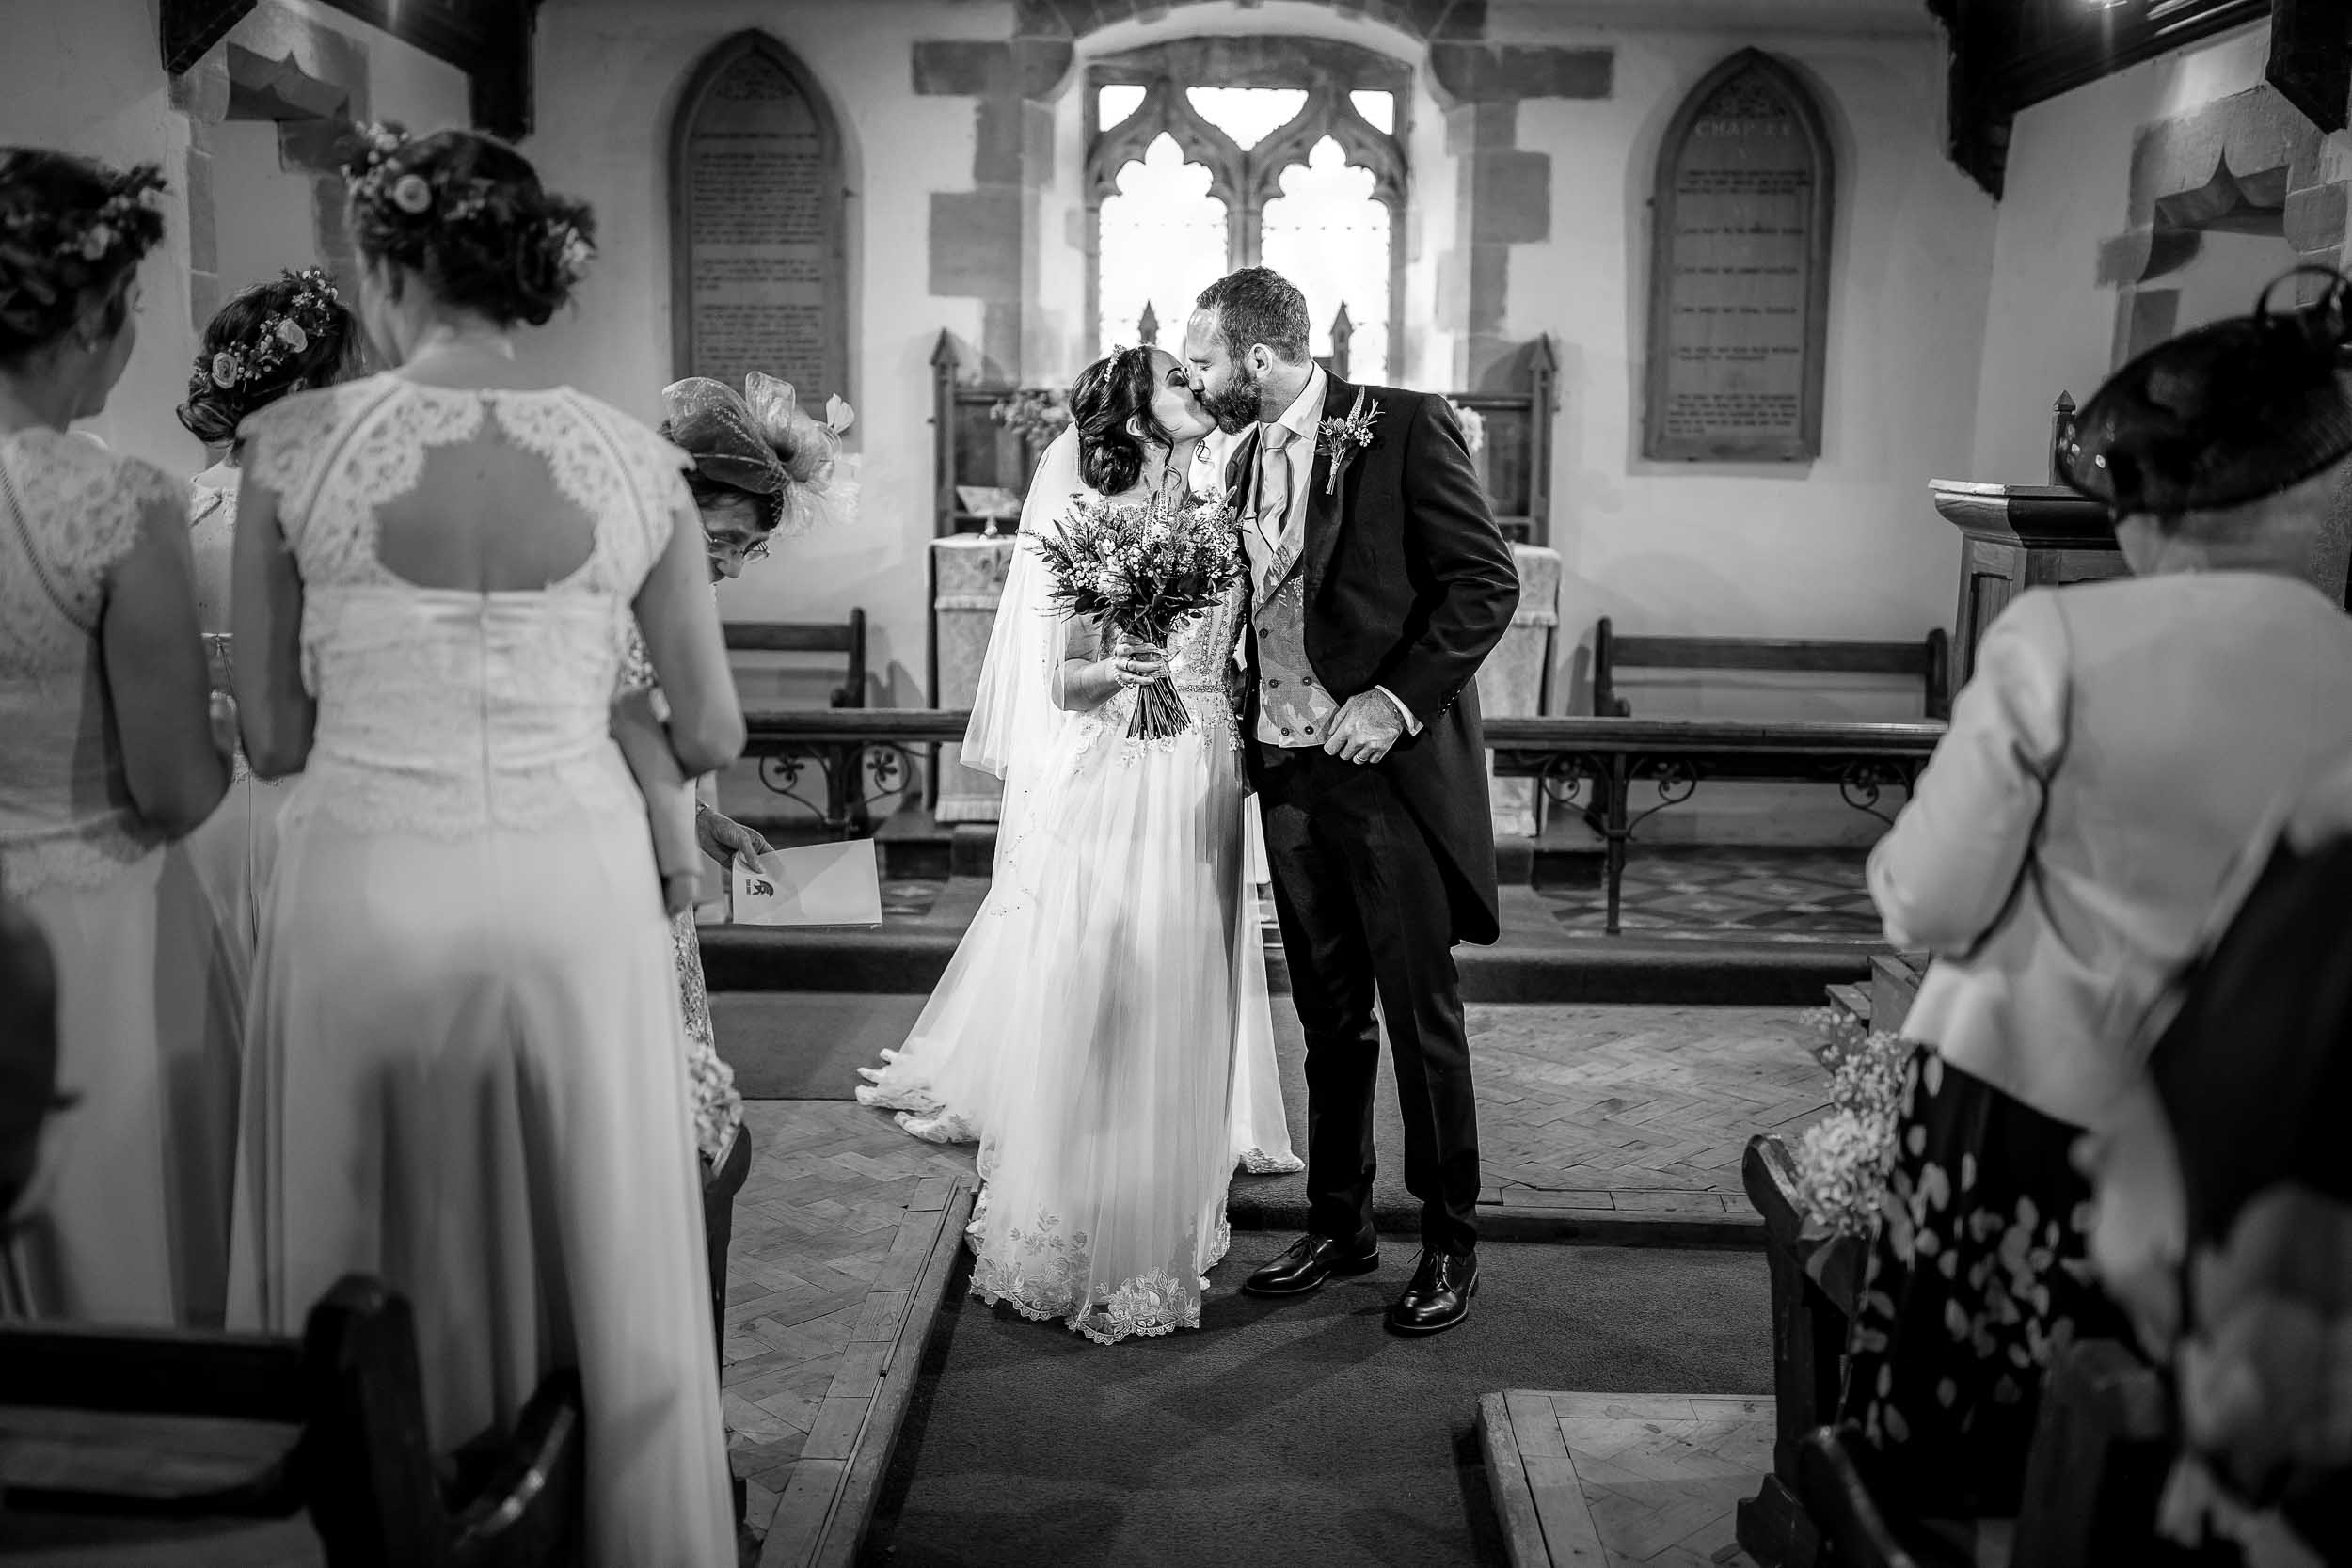 Bespoke by Nature, Lower House Farm, Herefordshire, Wedding, Photographer, Black mountains, Wedding Photography, Weddings, Photographers, Hereford, West-Midlands,